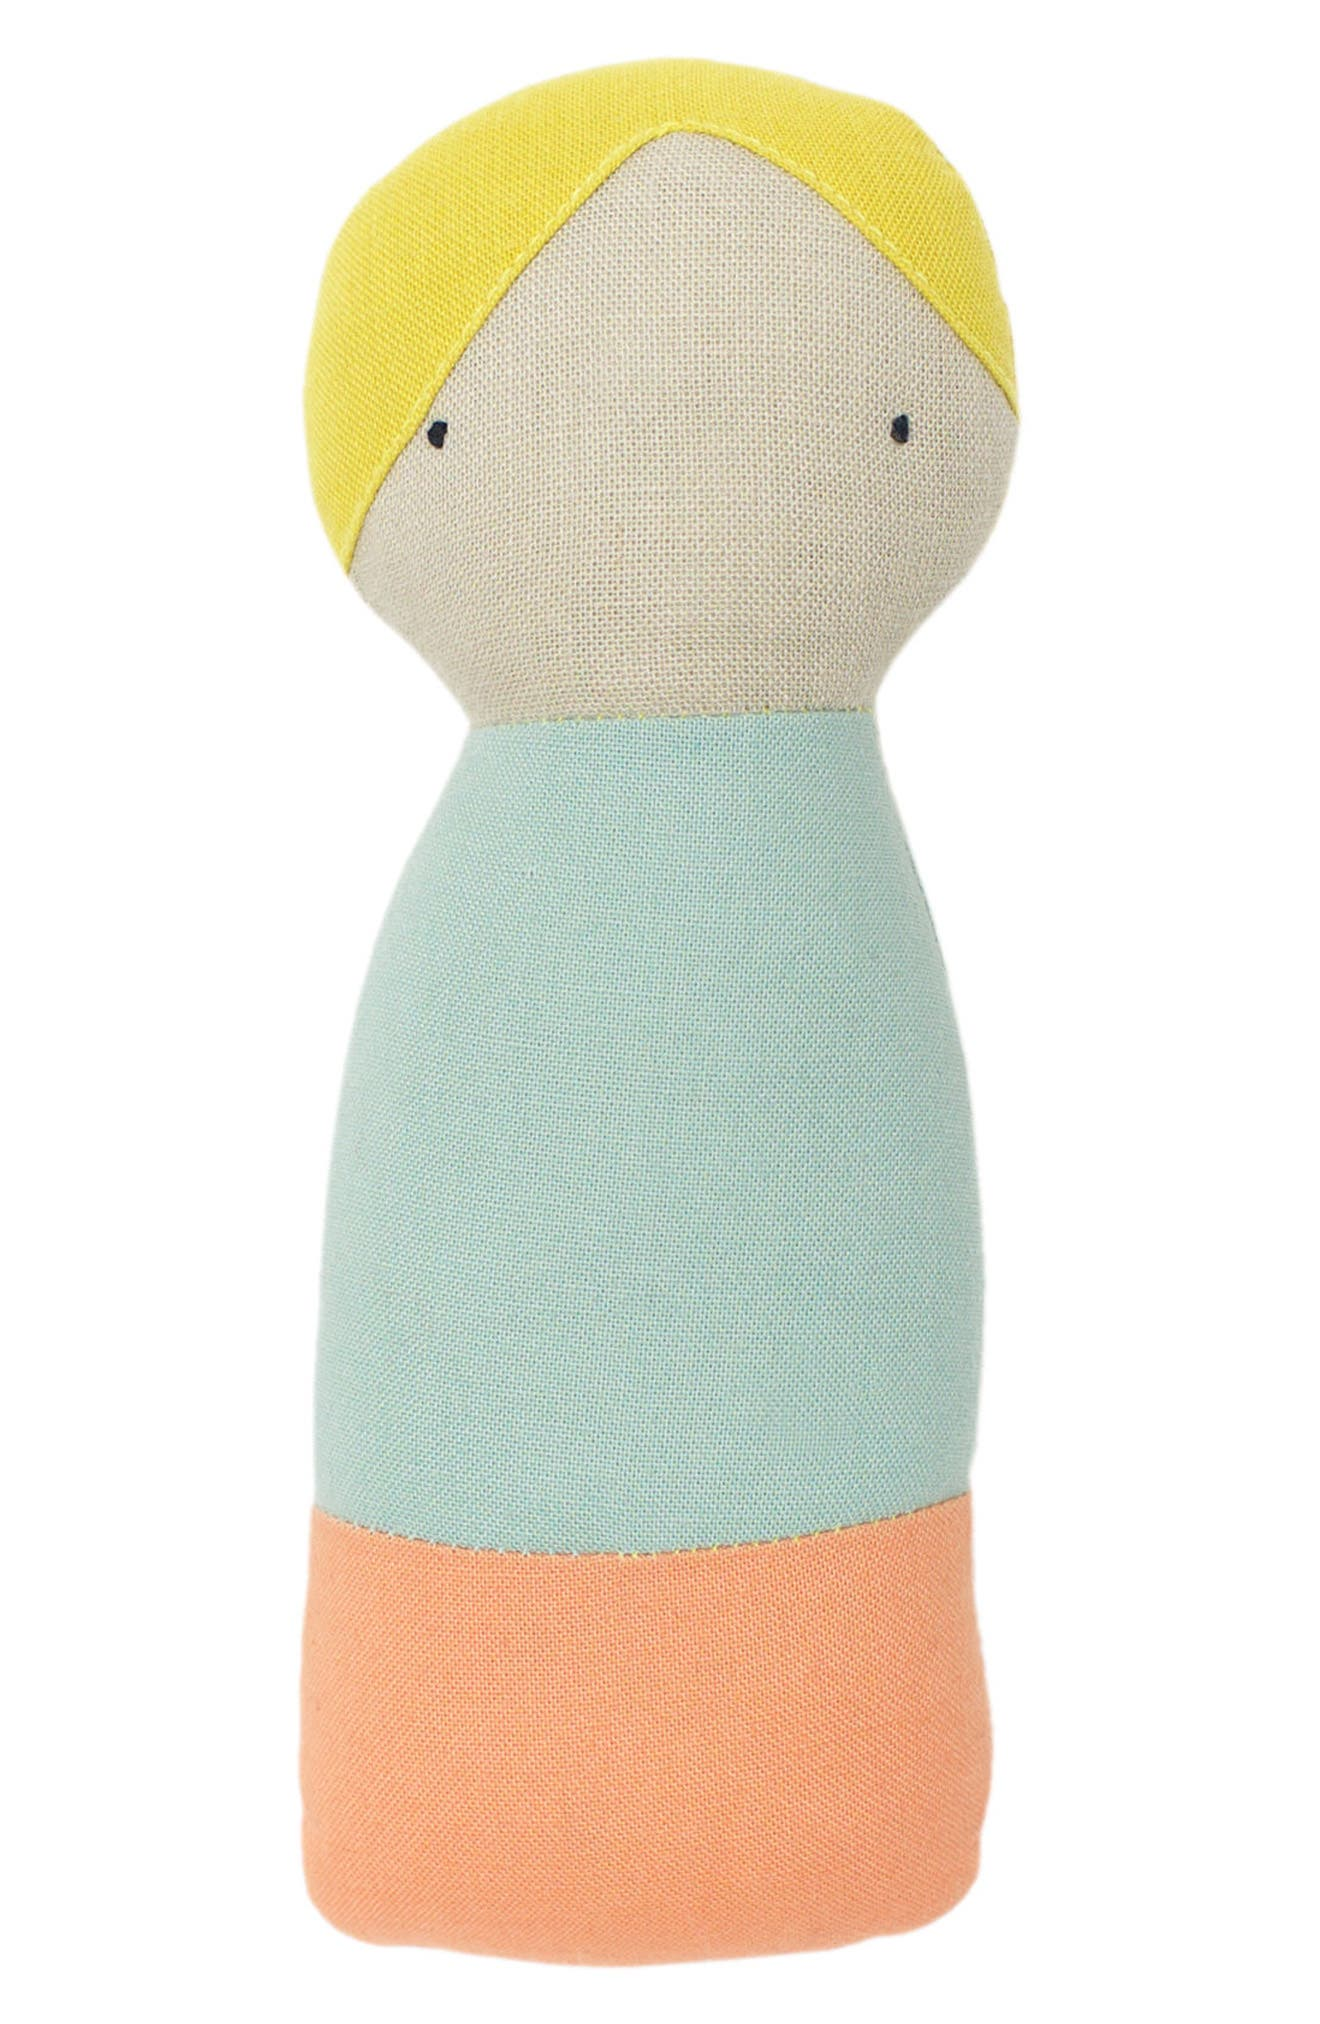 ouistitine x Pehr Little Peeps Rattle,                             Main thumbnail 1, color,